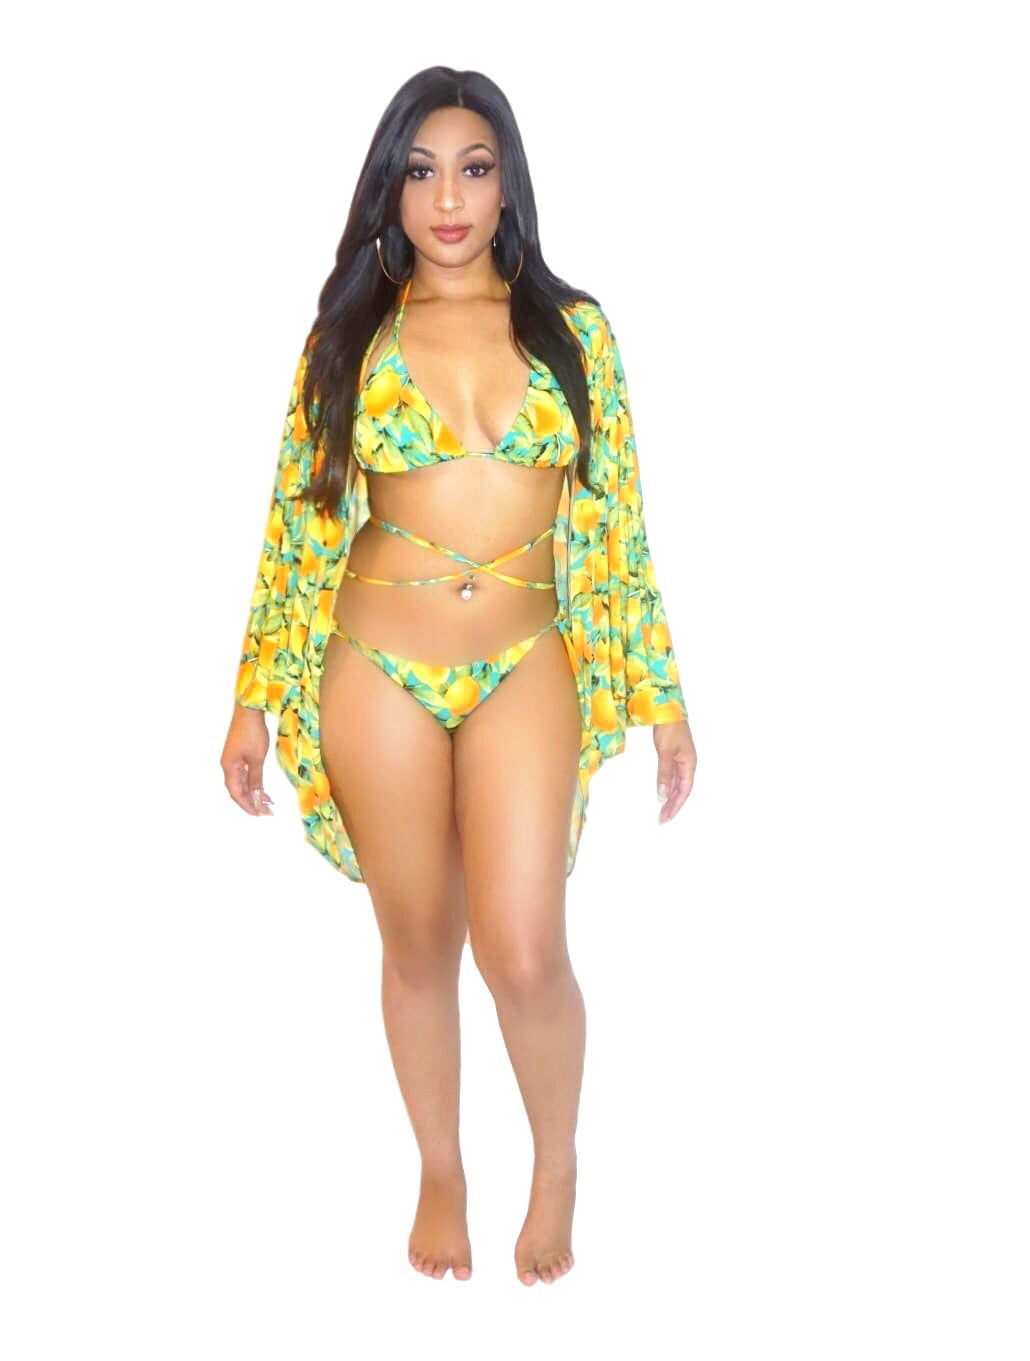 b63e64d4bd Lemon design swim suit set includes bikini and cover up